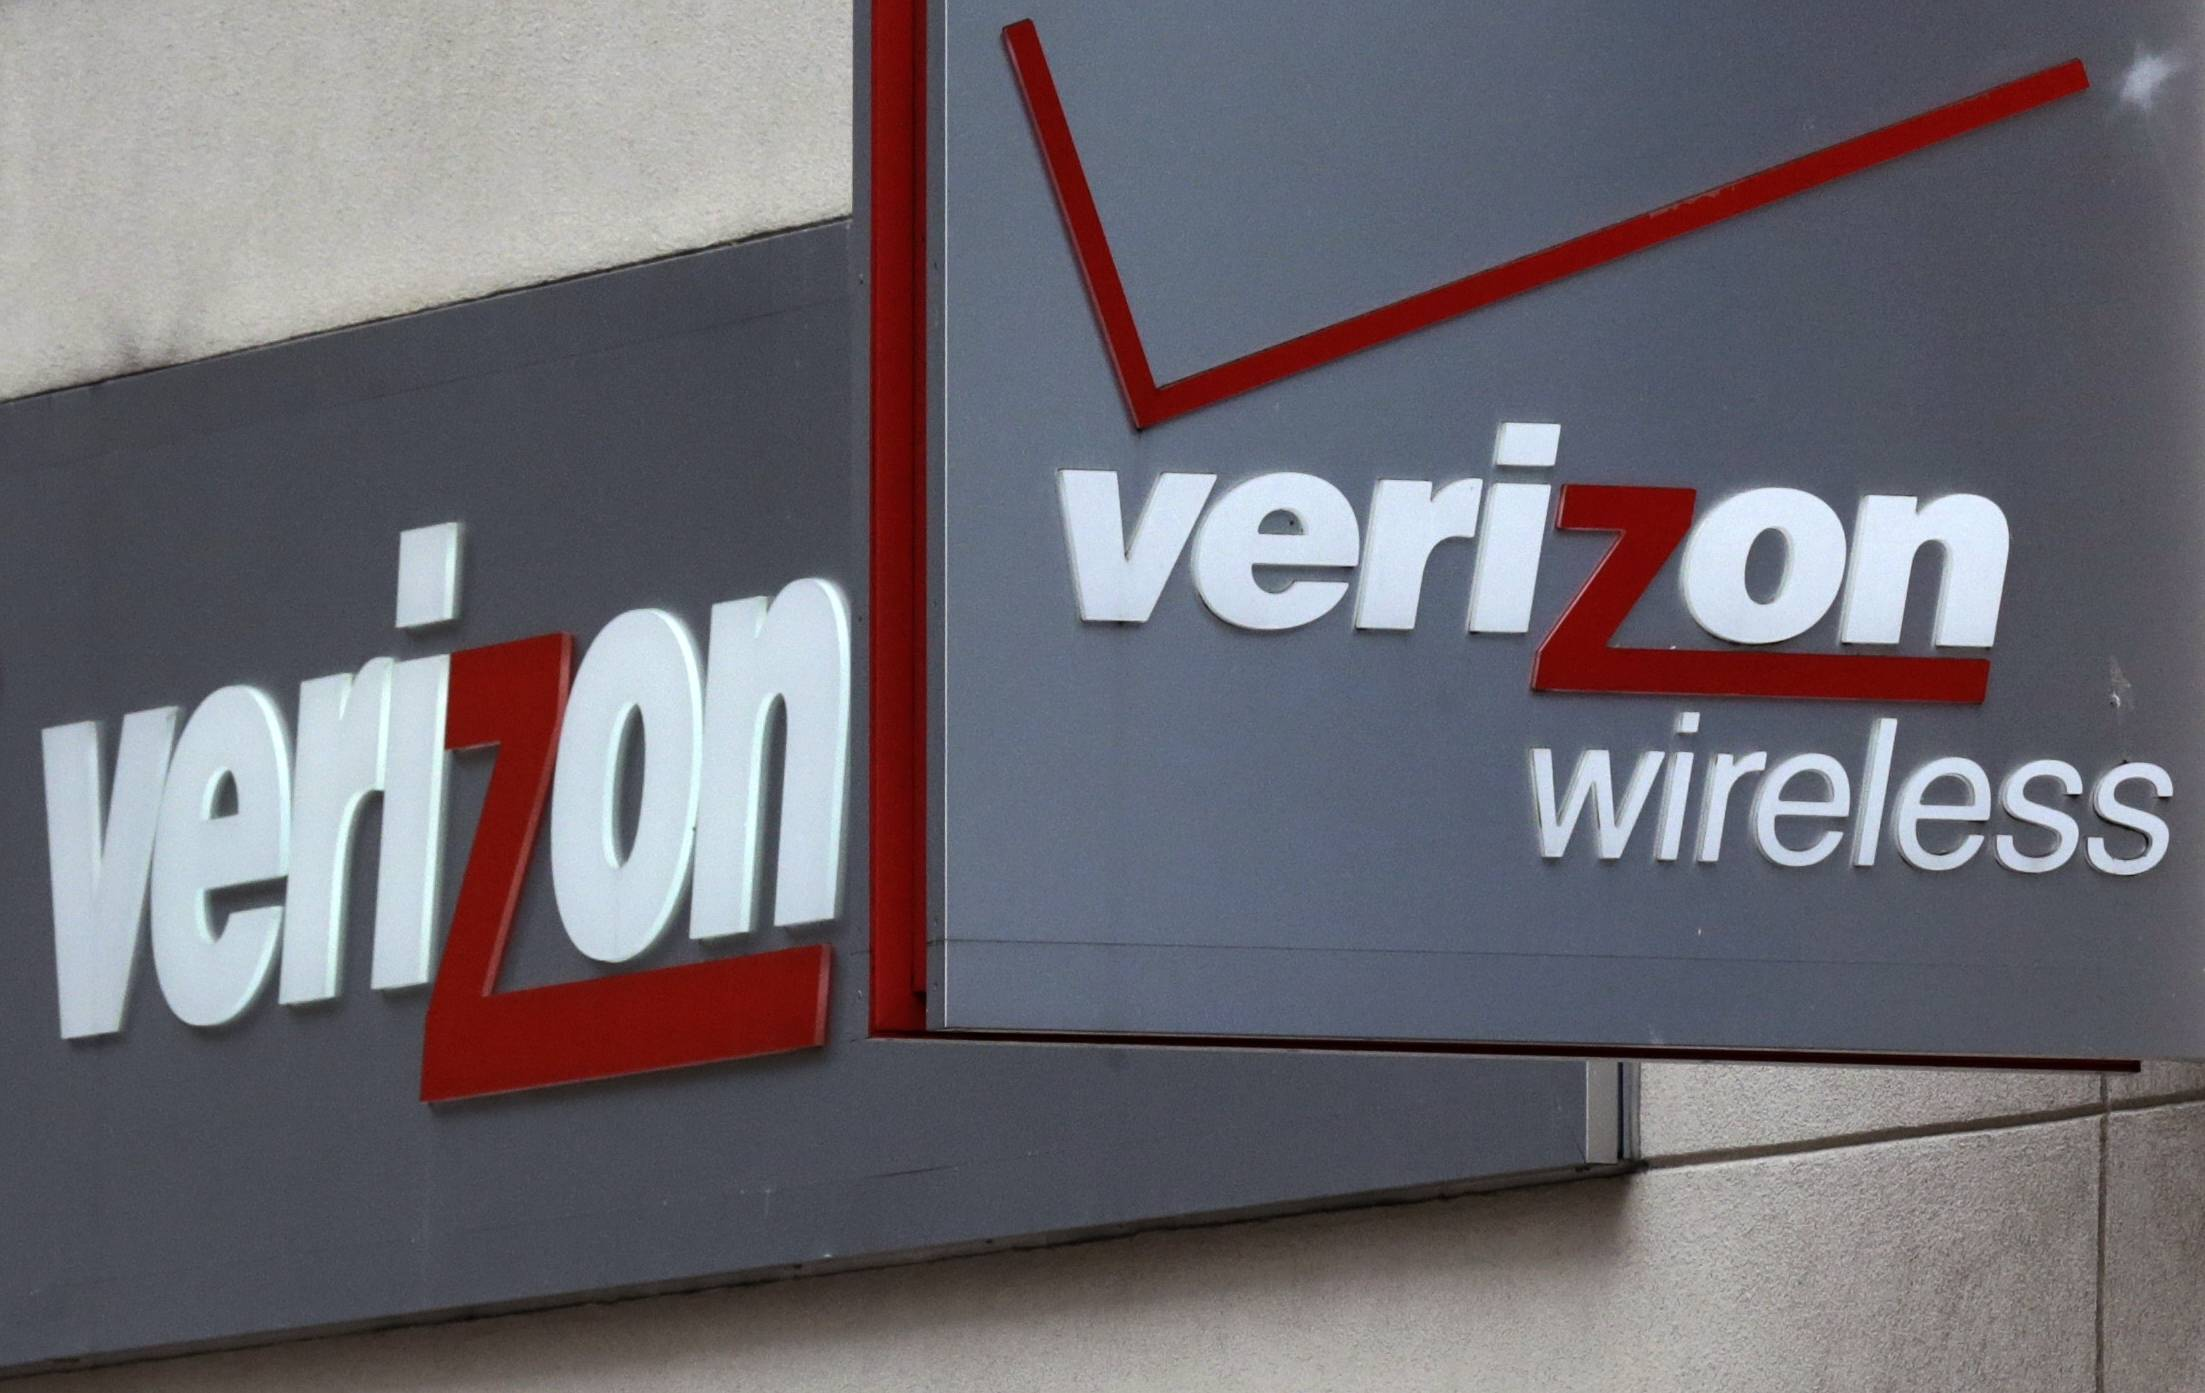 Associated PressVerizon is reporting that its second-quarter earnings nearly doubled after securing full ownership of Verizon Wireless.Profit jumped to $4.32 billion from $2.25 billion, or 78 cents per share.